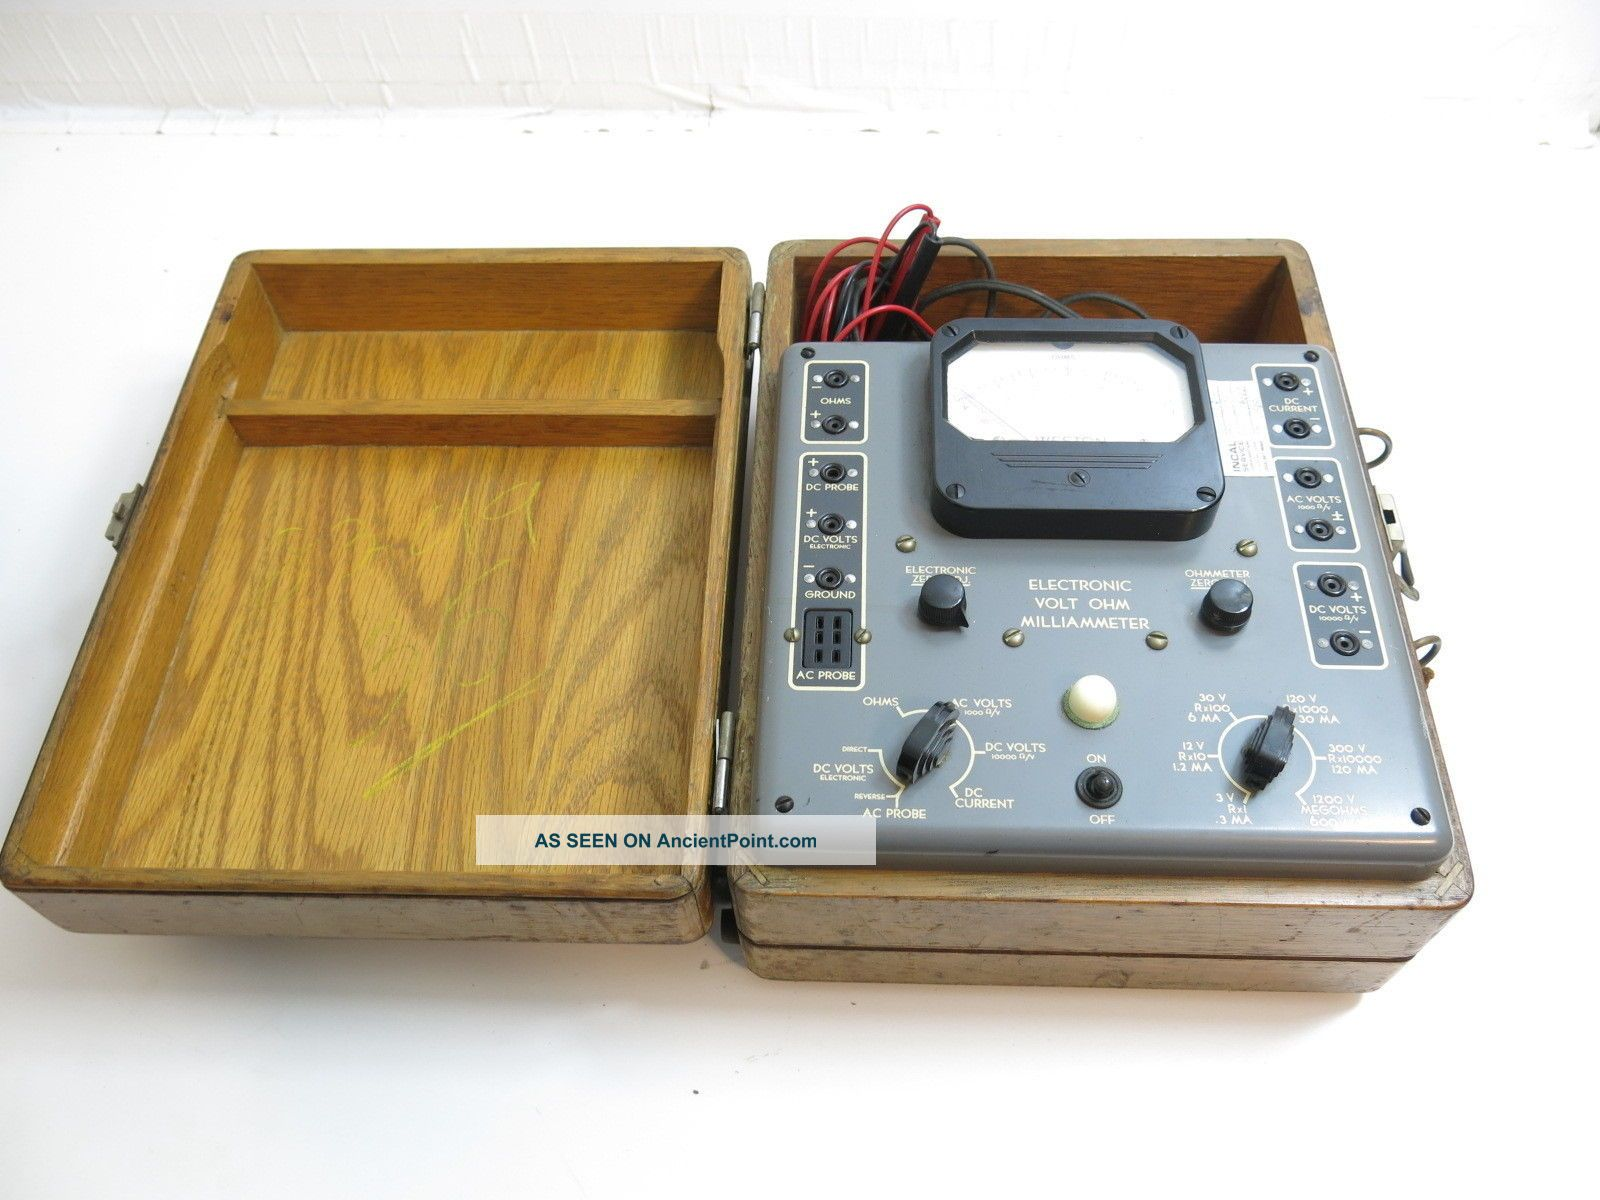 Antique / Vintage Weston Model 769 Electronic Volt Ohm Milliammeter Other Antique Science Equip photo